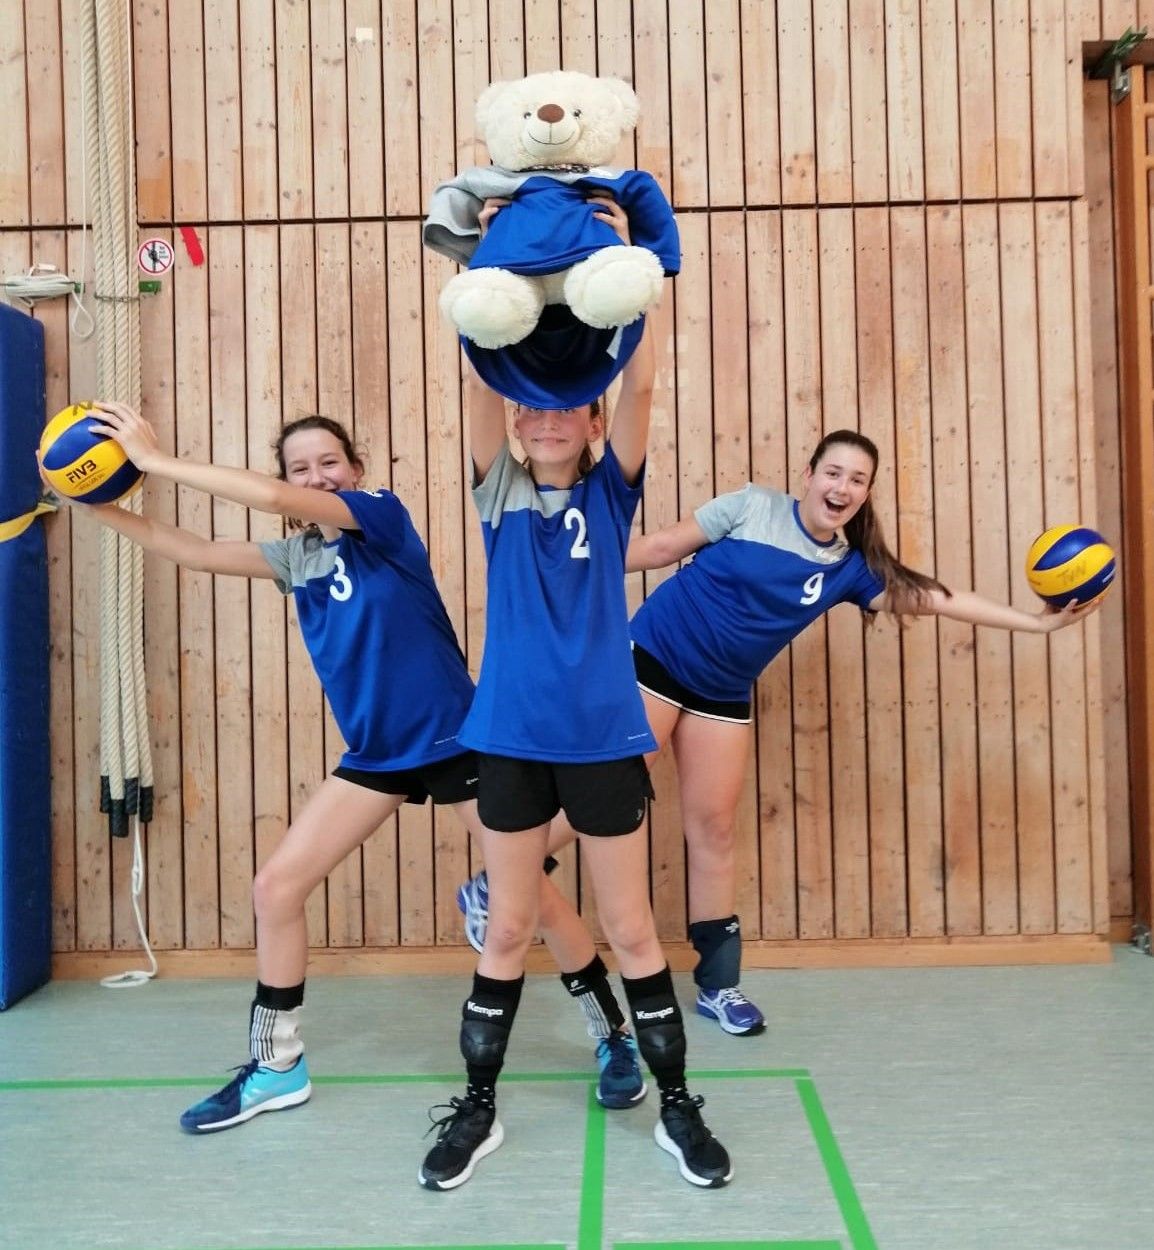 Volleyball-Minis